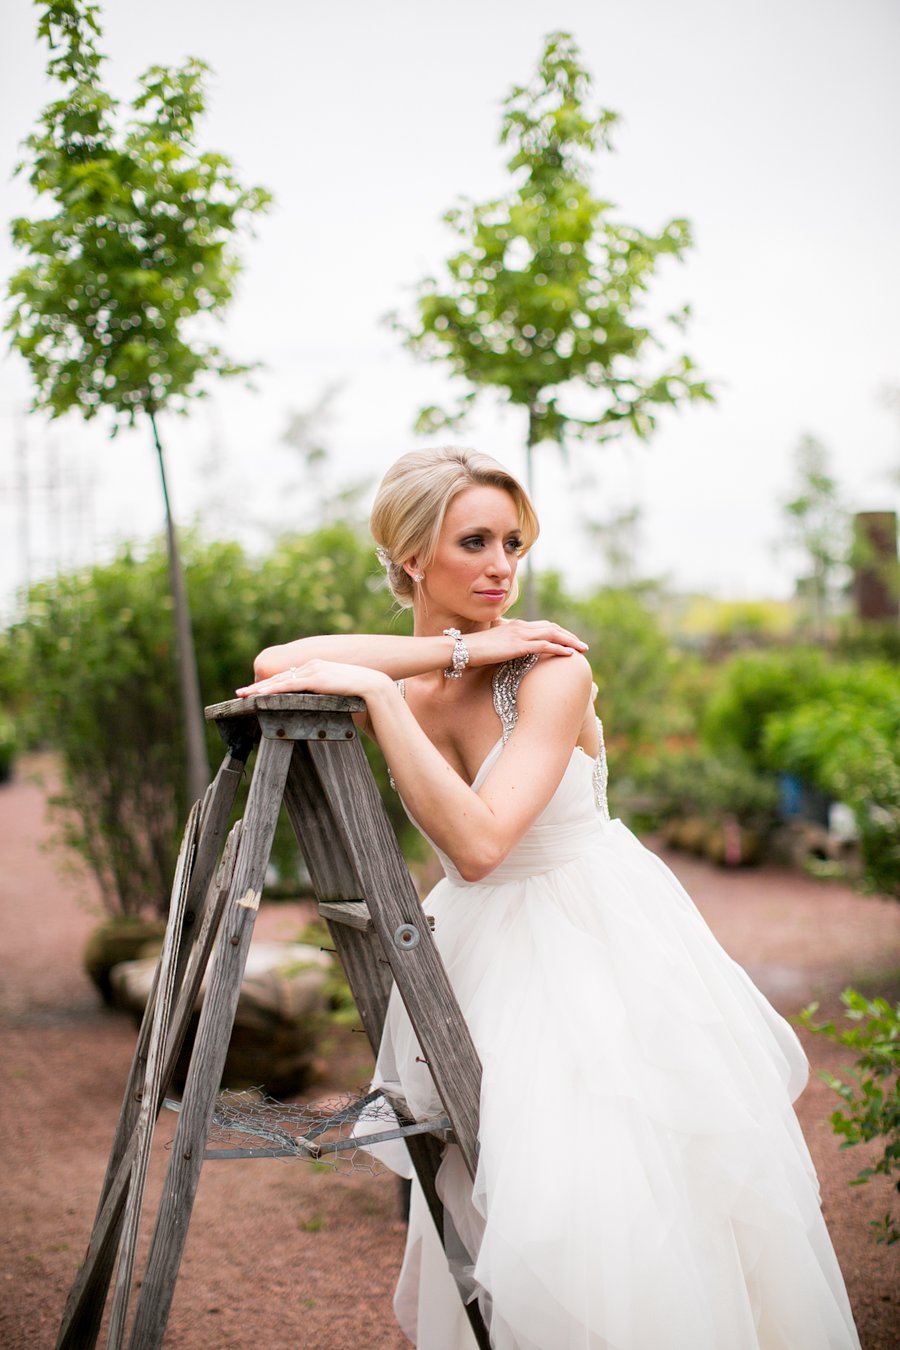 Bridal session with bride leaning on a ladder.